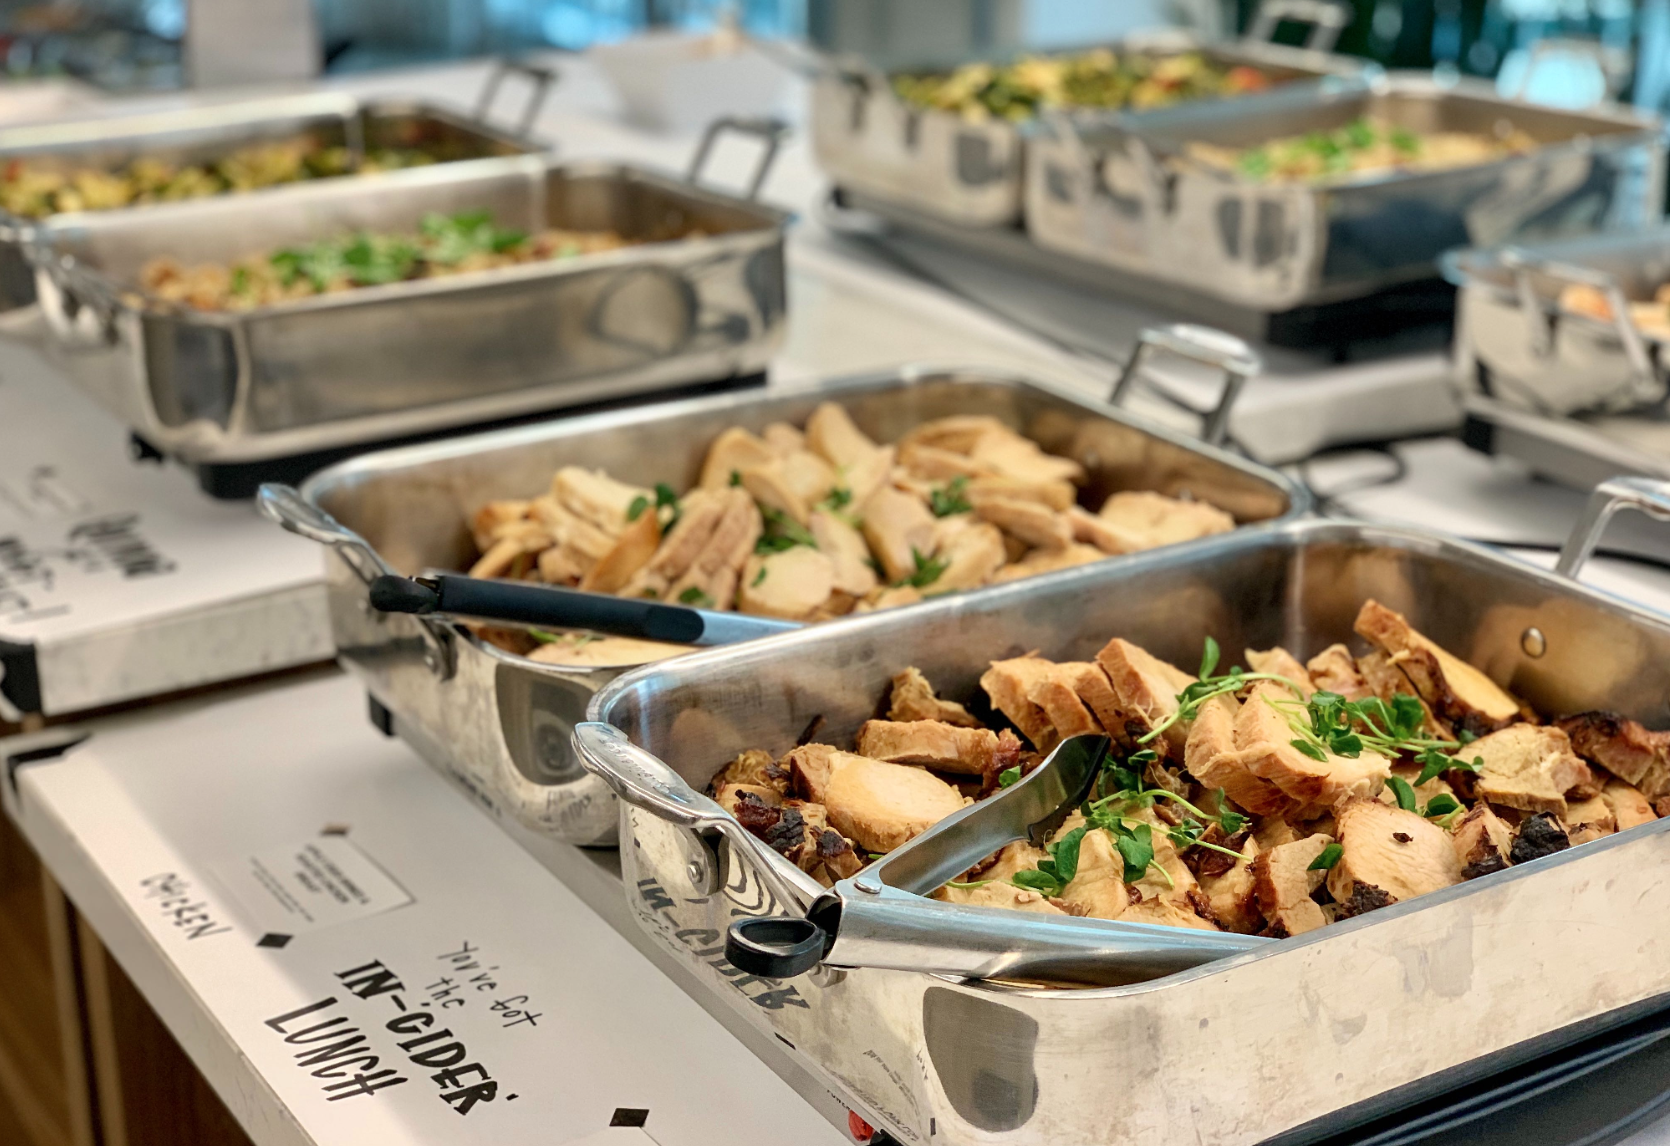 Catering lunch line with pans of food